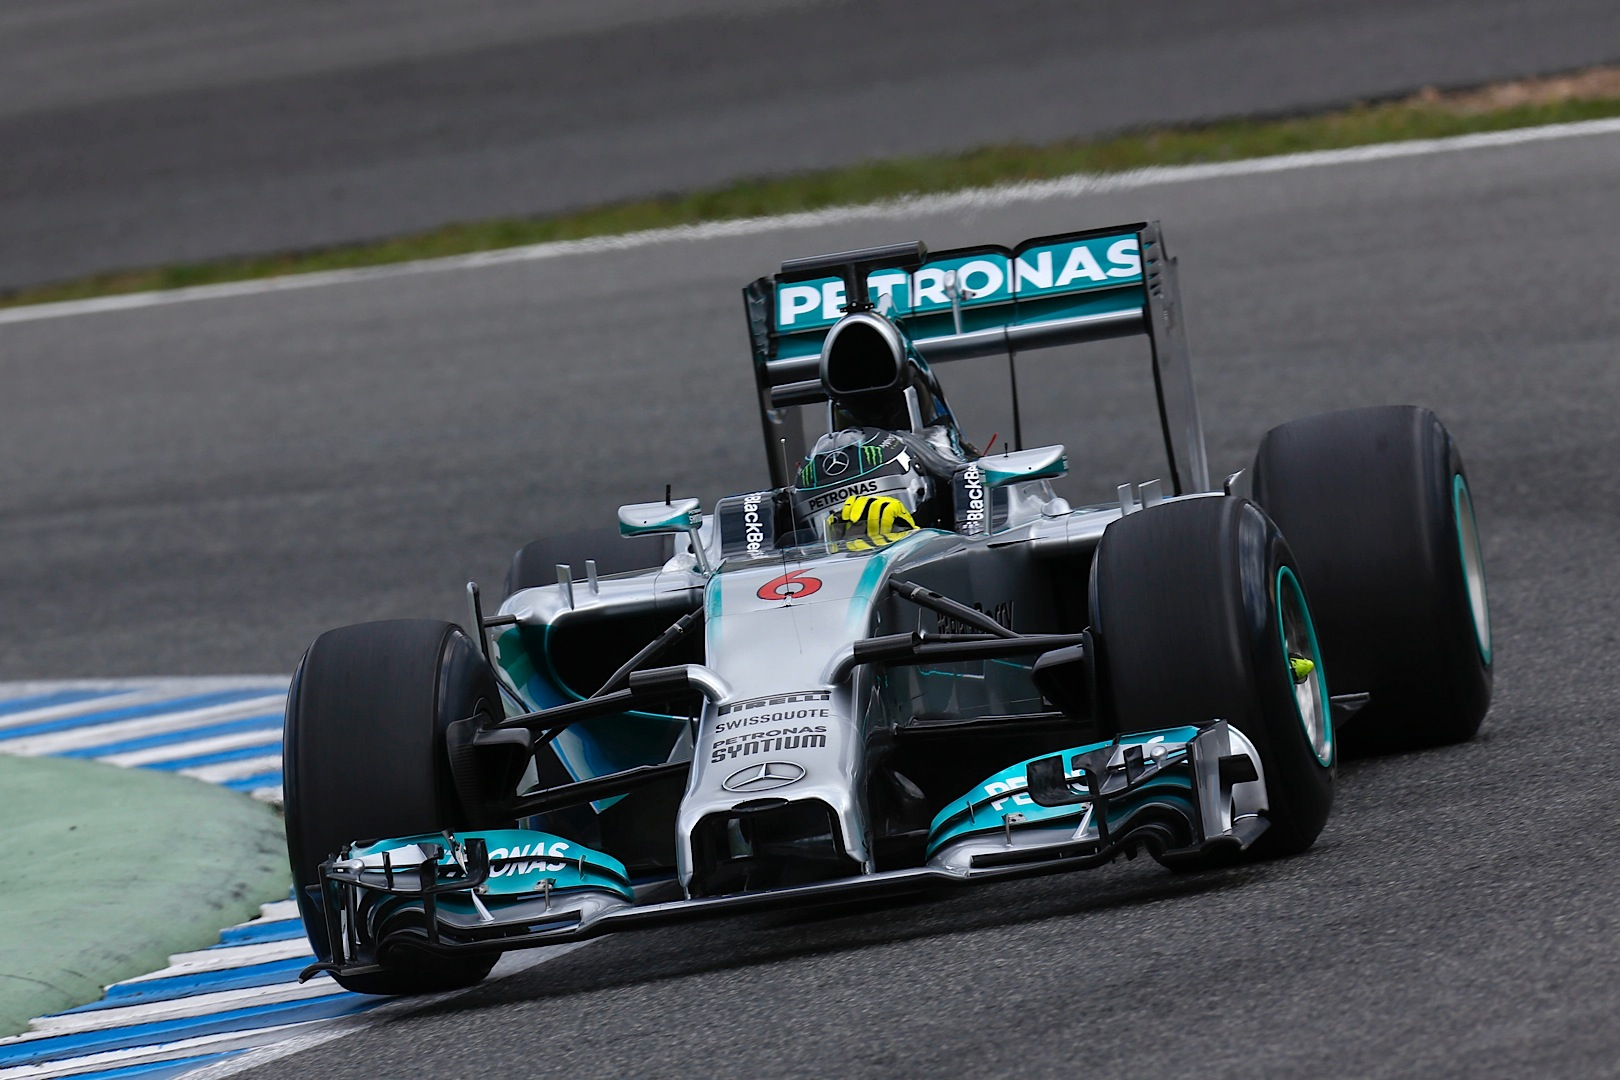 petronas turned down williams lotus for mercedes autoevolution. Black Bedroom Furniture Sets. Home Design Ideas